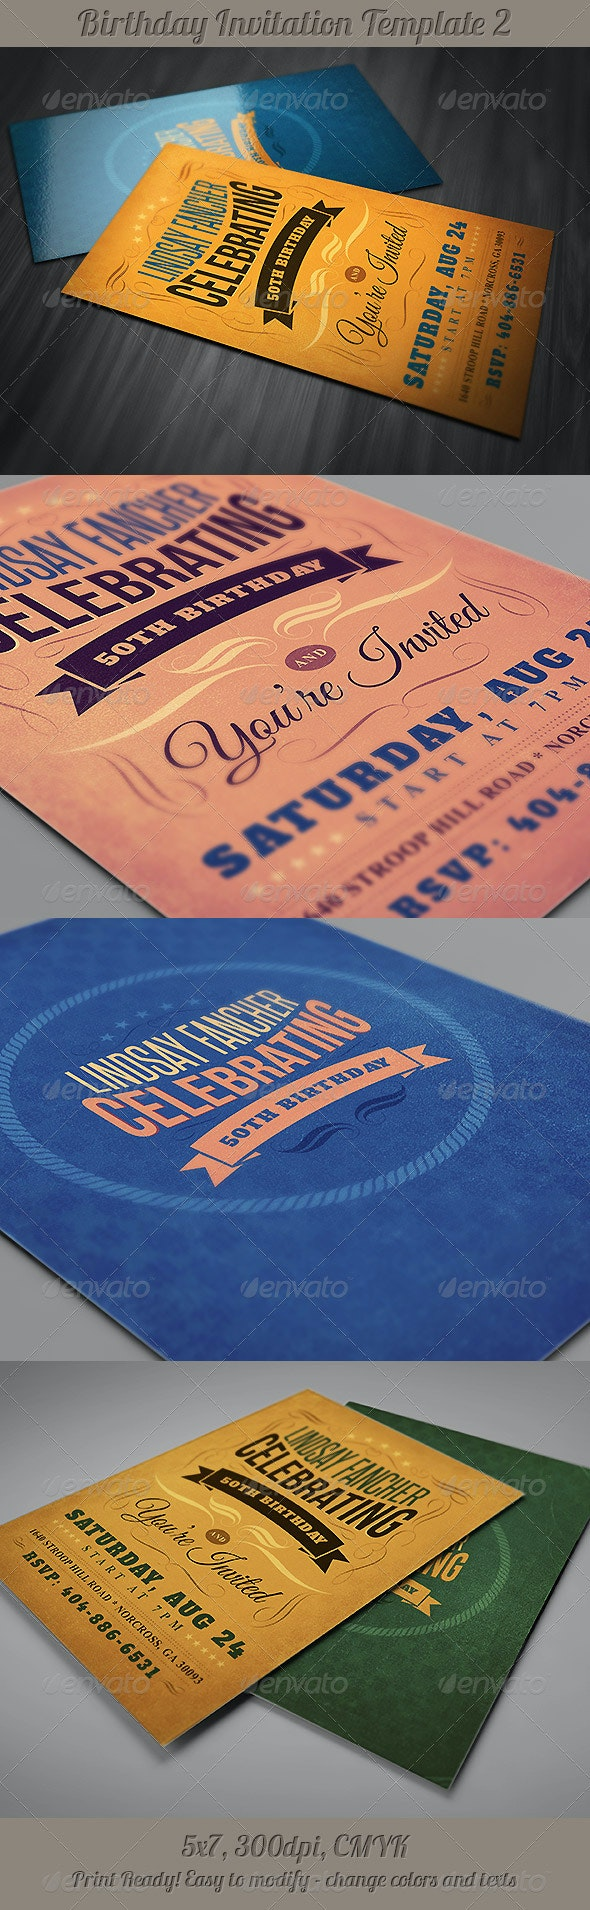 Retro Birthday Invitation 2 - Invitations Cards & Invites